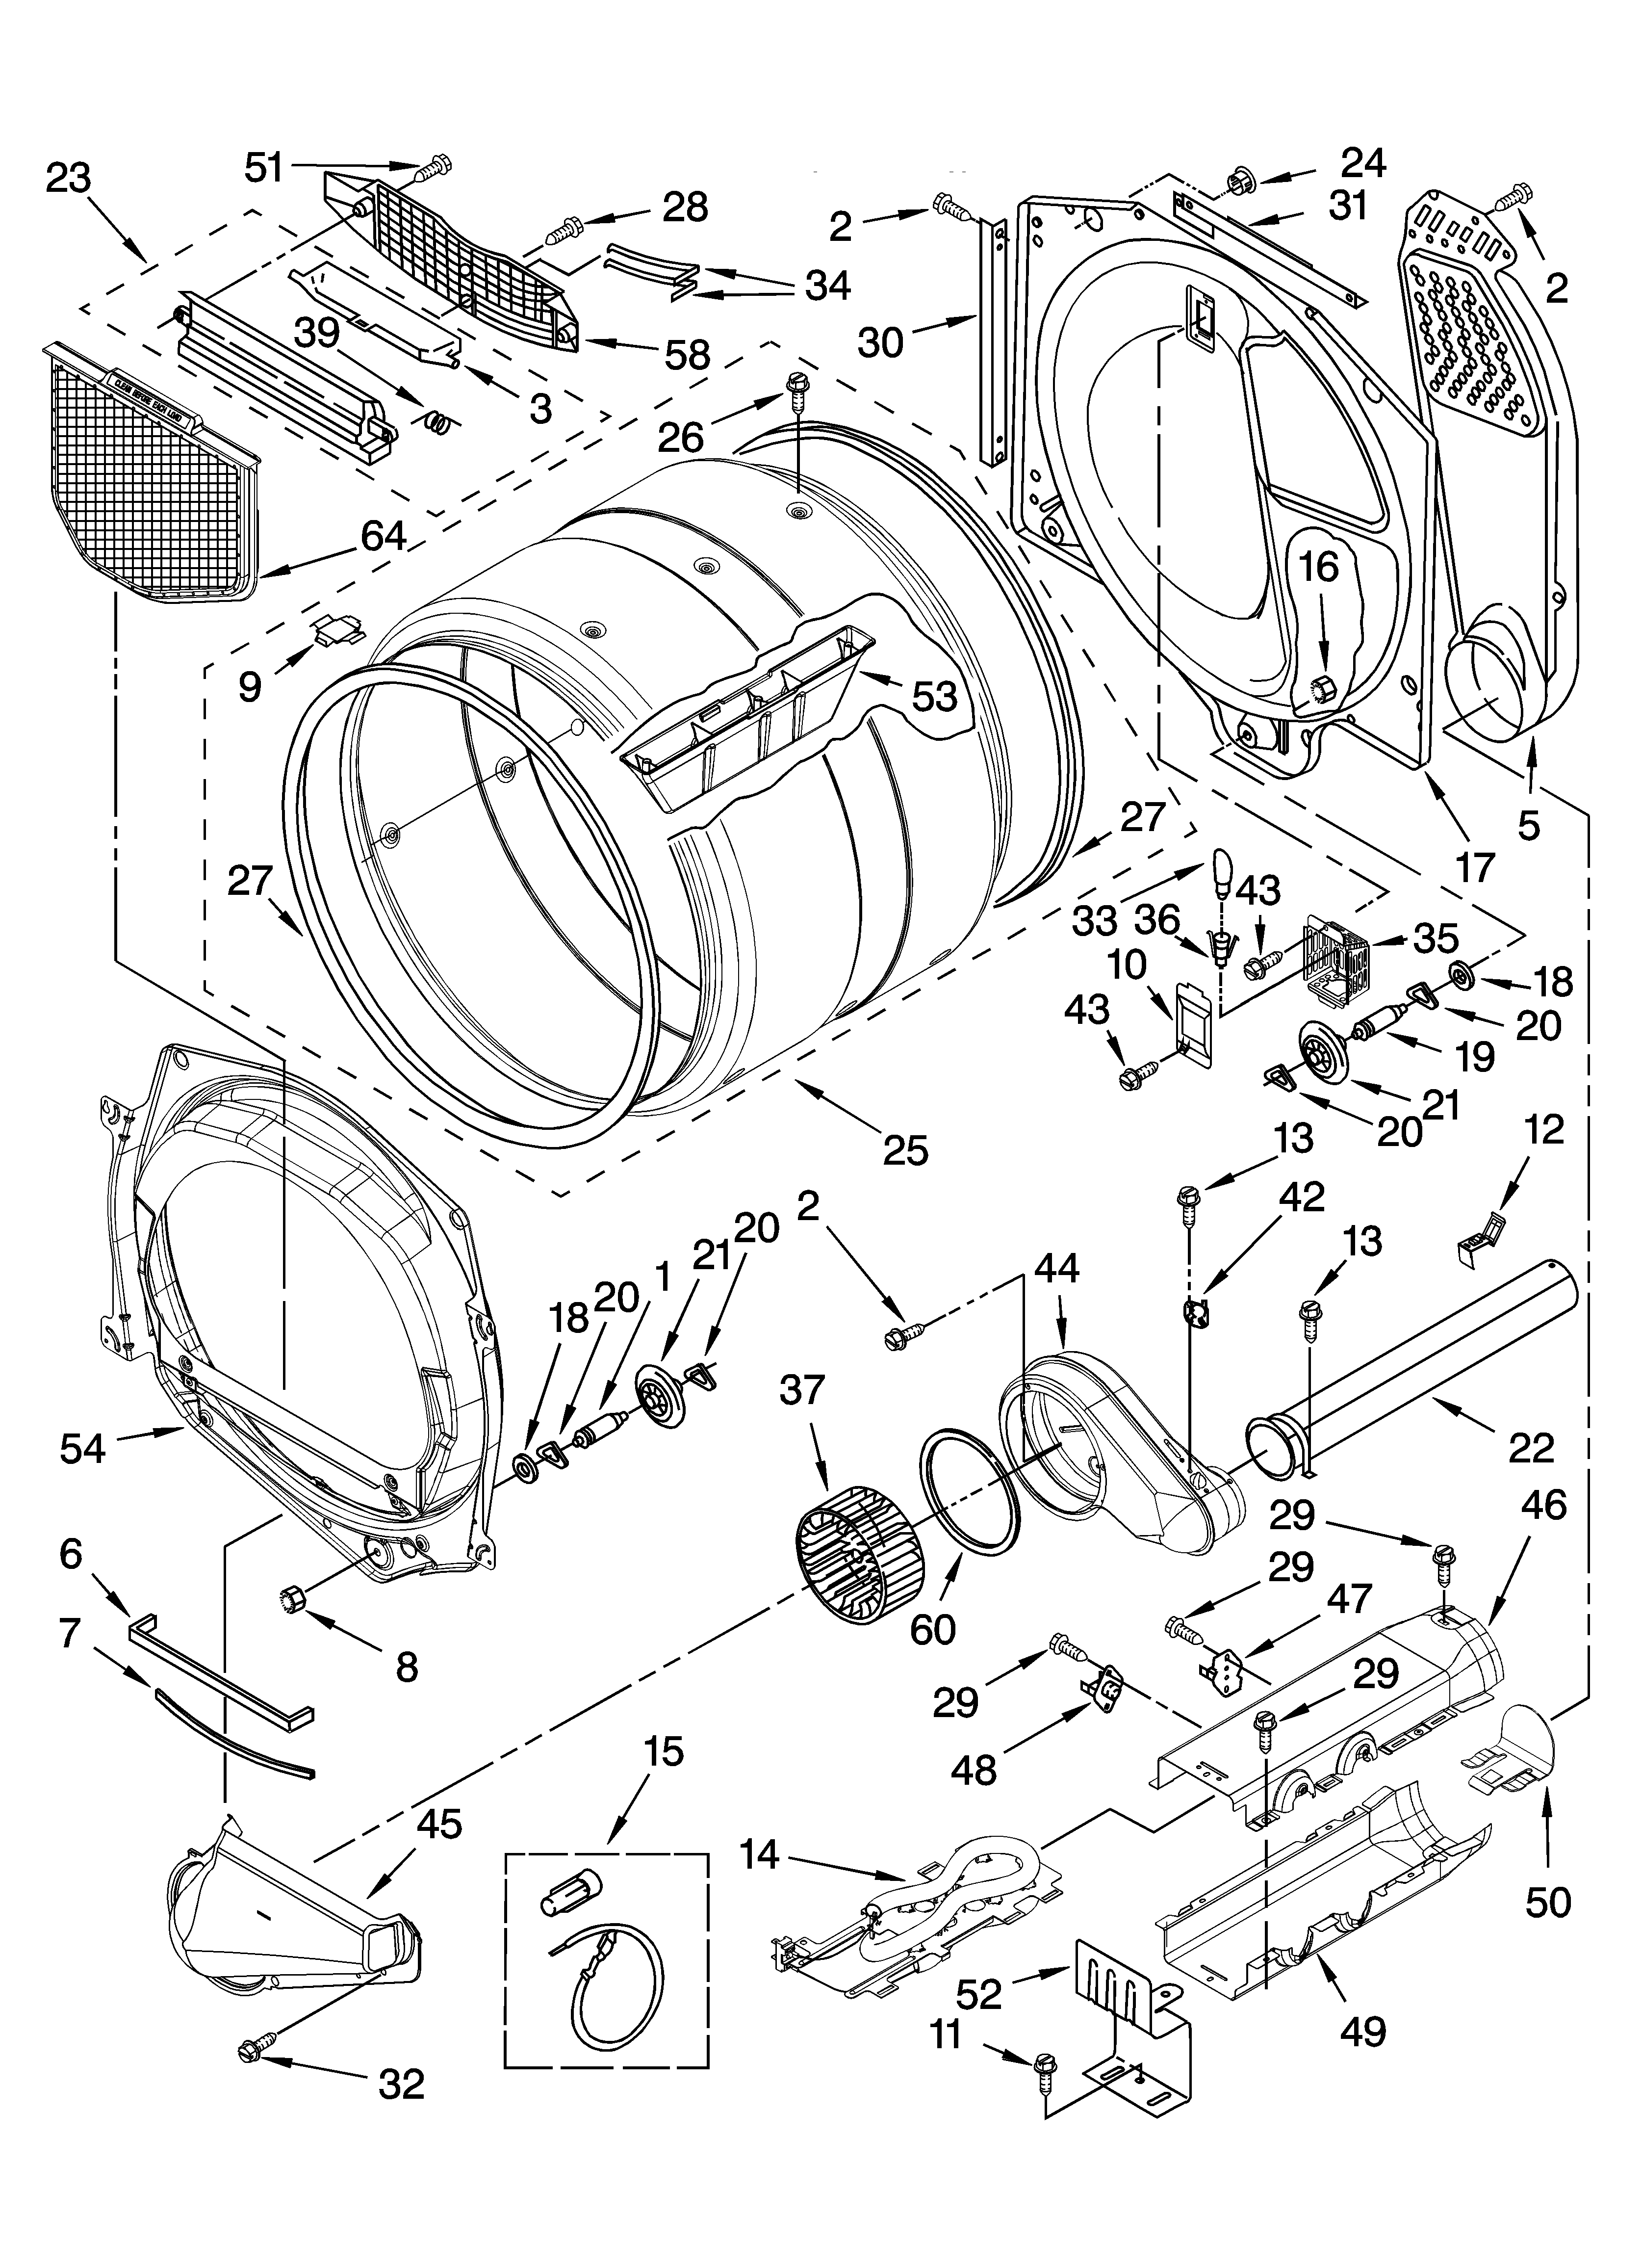 W0607169 00003?resize\=840%2C1159 diagrams 600312 kitchenaid dryer wiring schematic dishwasher kitchenaid dryer wiring diagram at gsmx.co